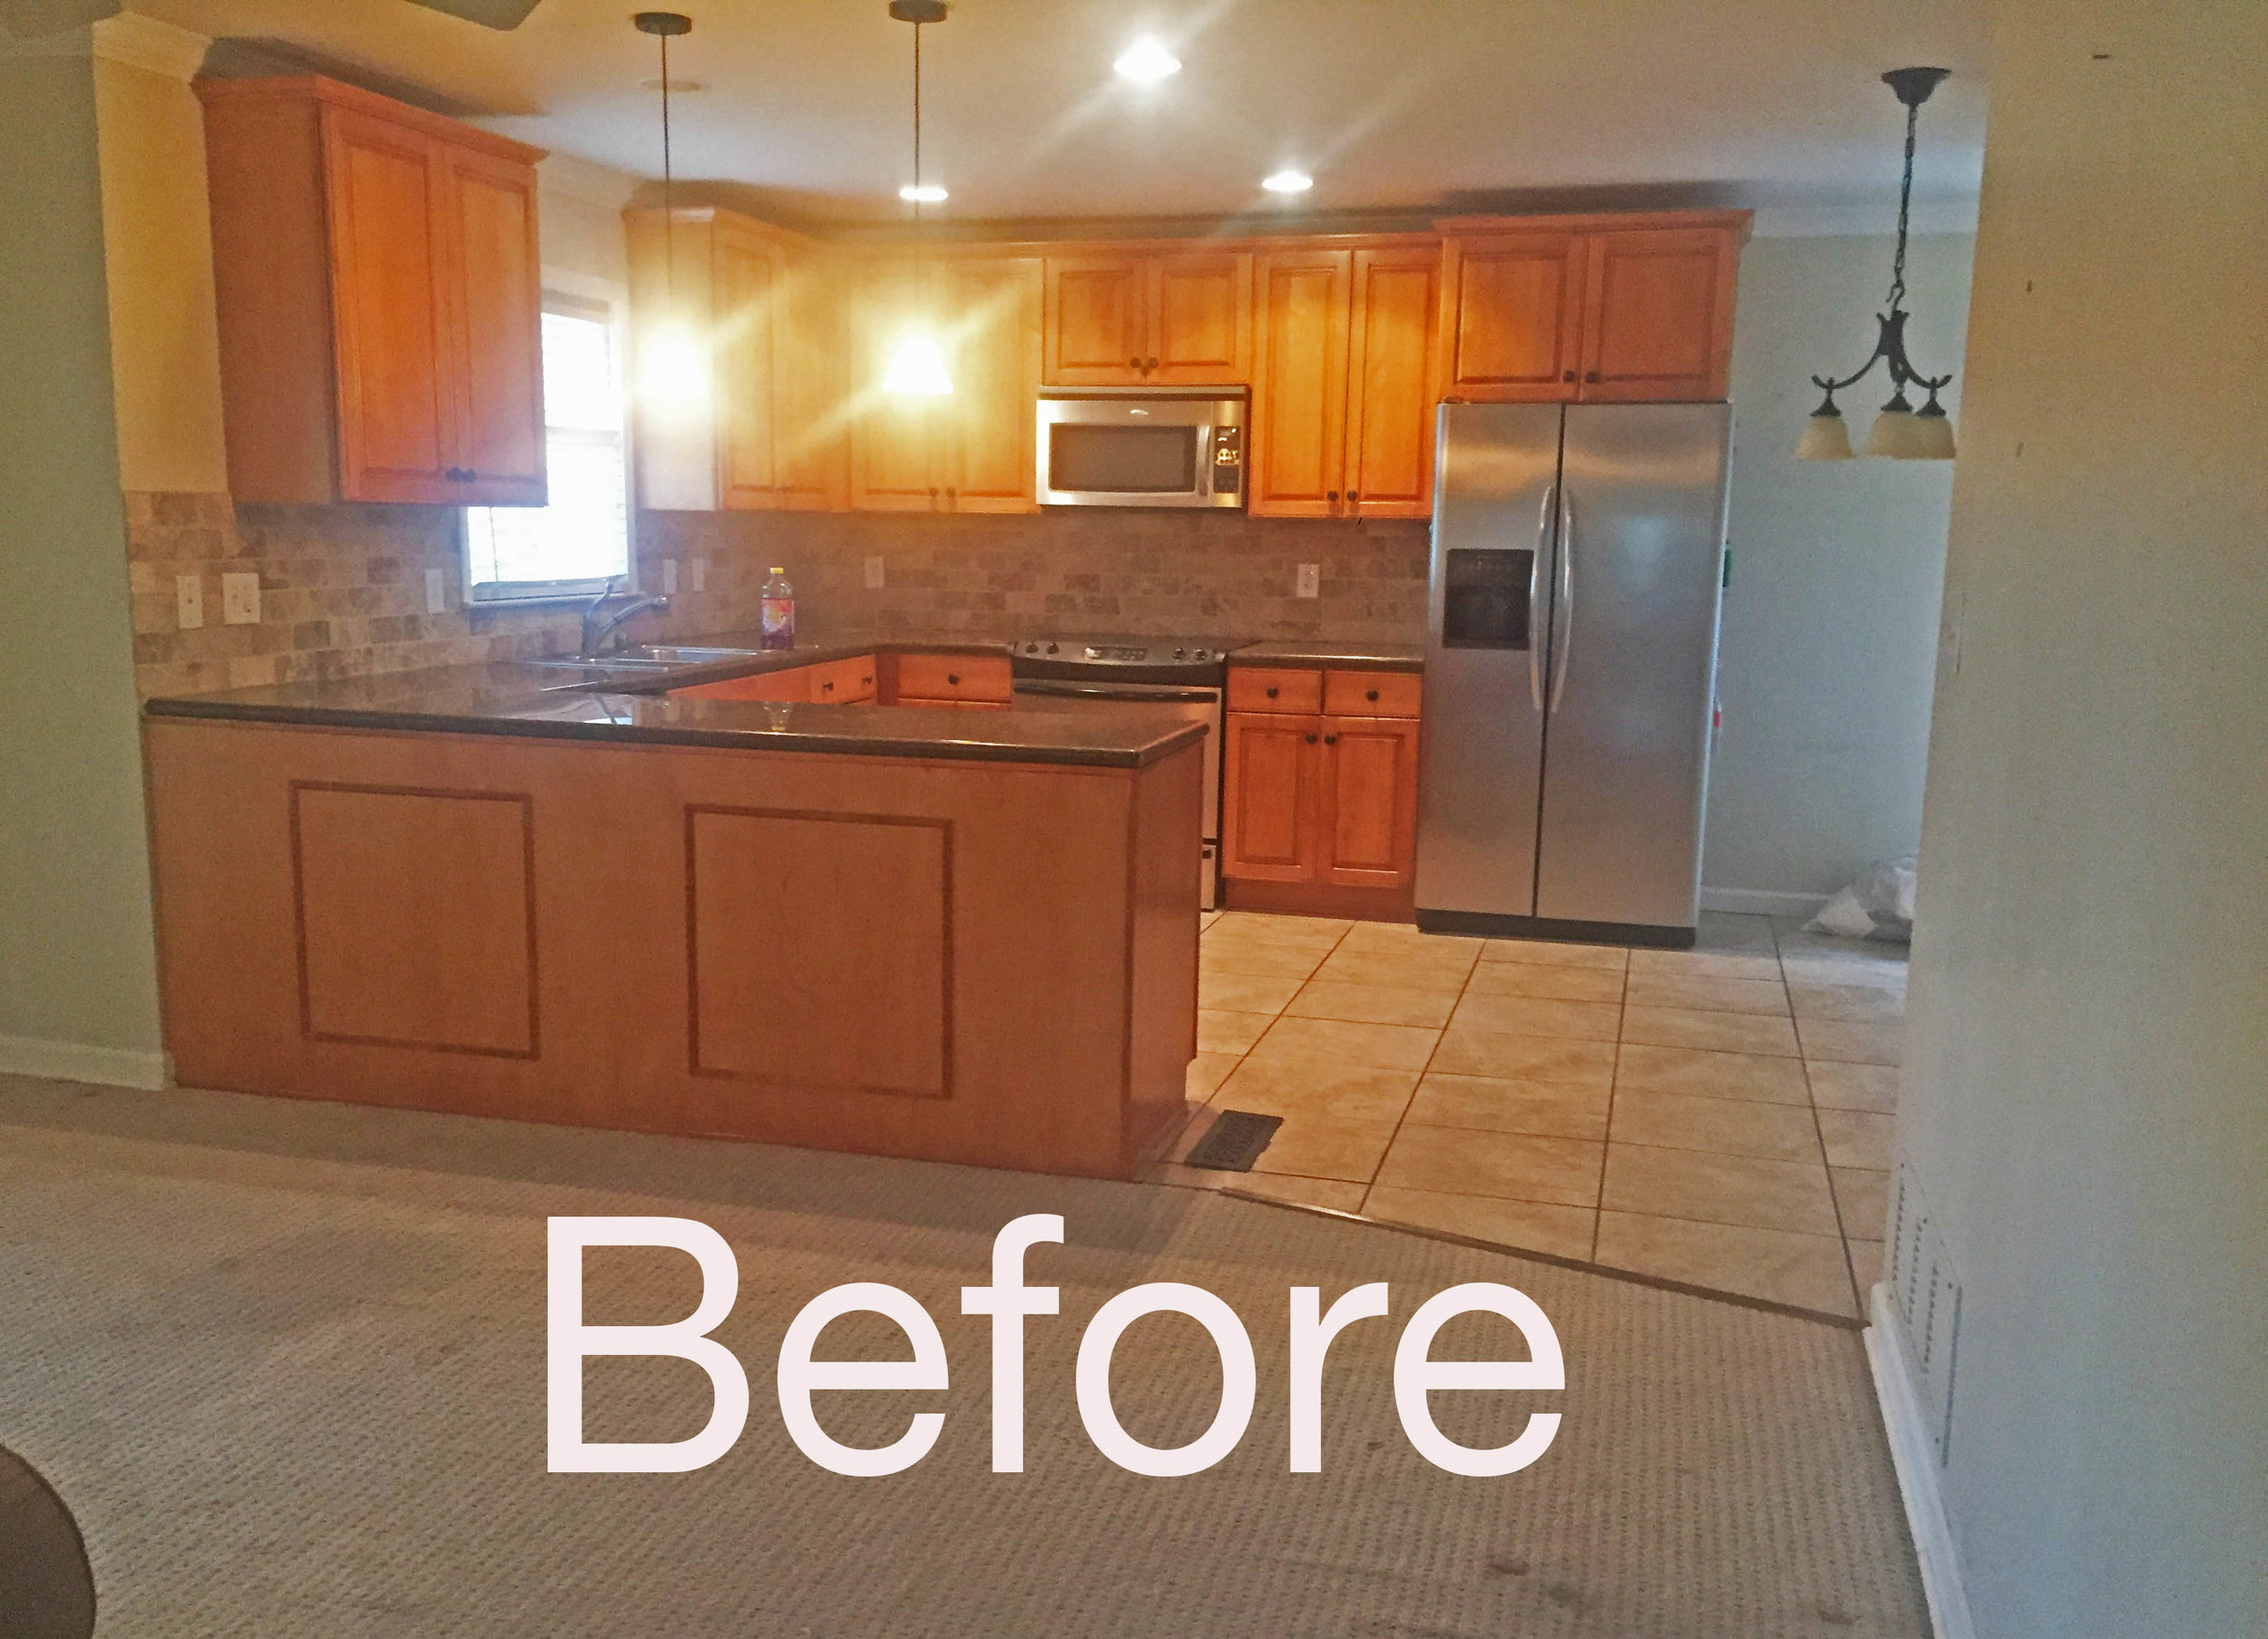 The kitchen will be totally redone.  The flooring will be replaced with hardwood to match the rest of the home.  Lighting will also be added.